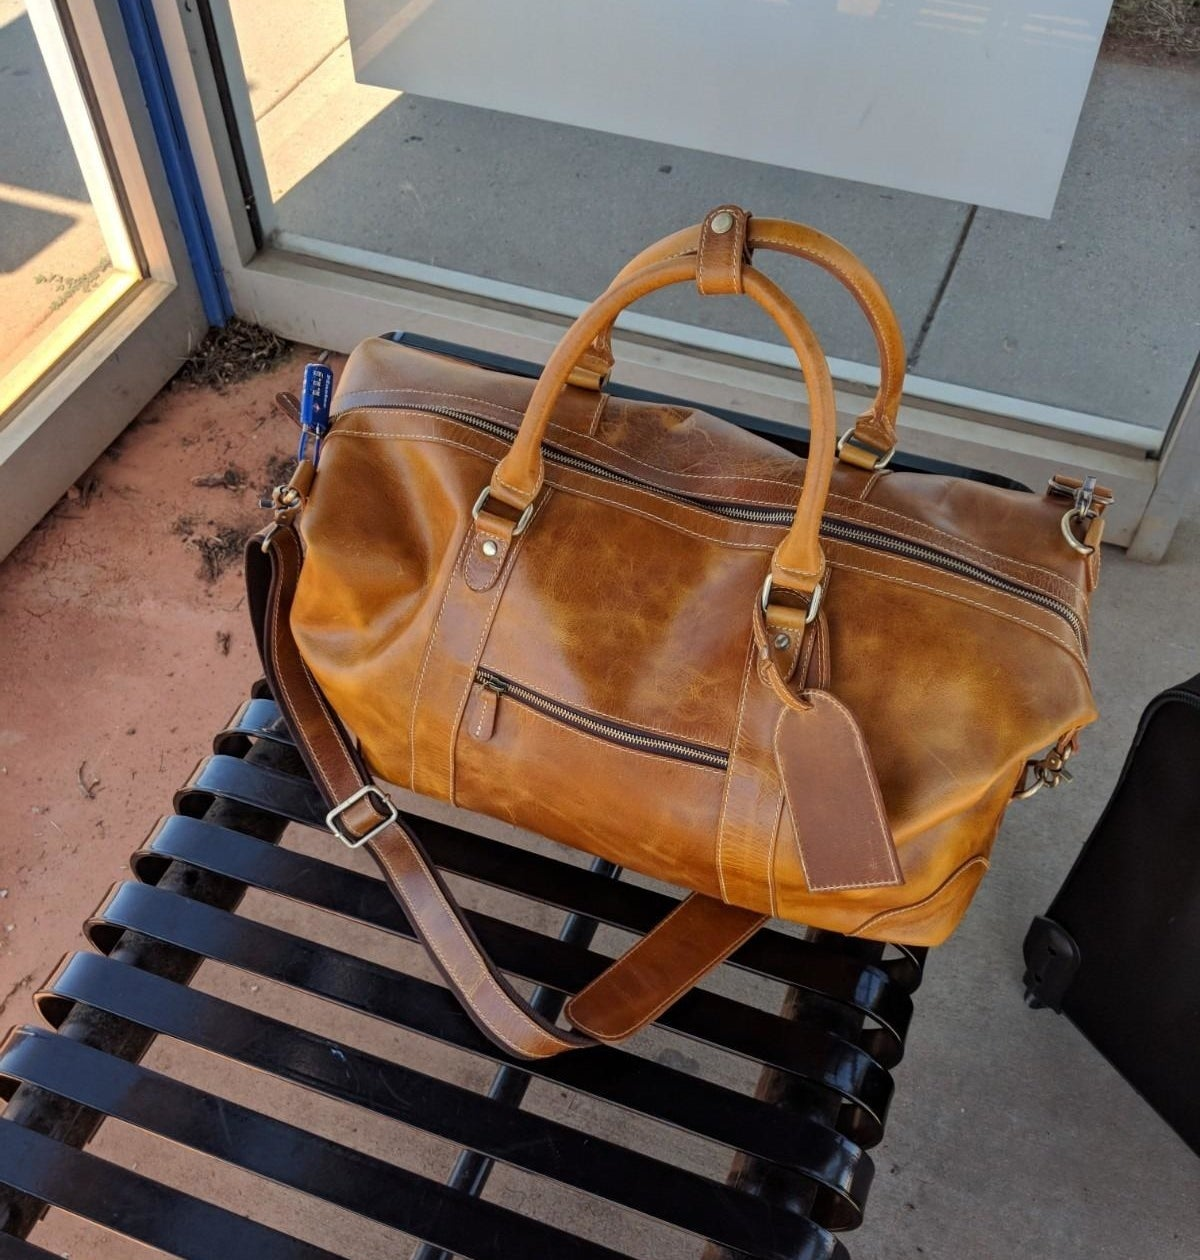 Reviewer photo of a brown leather duffel bag